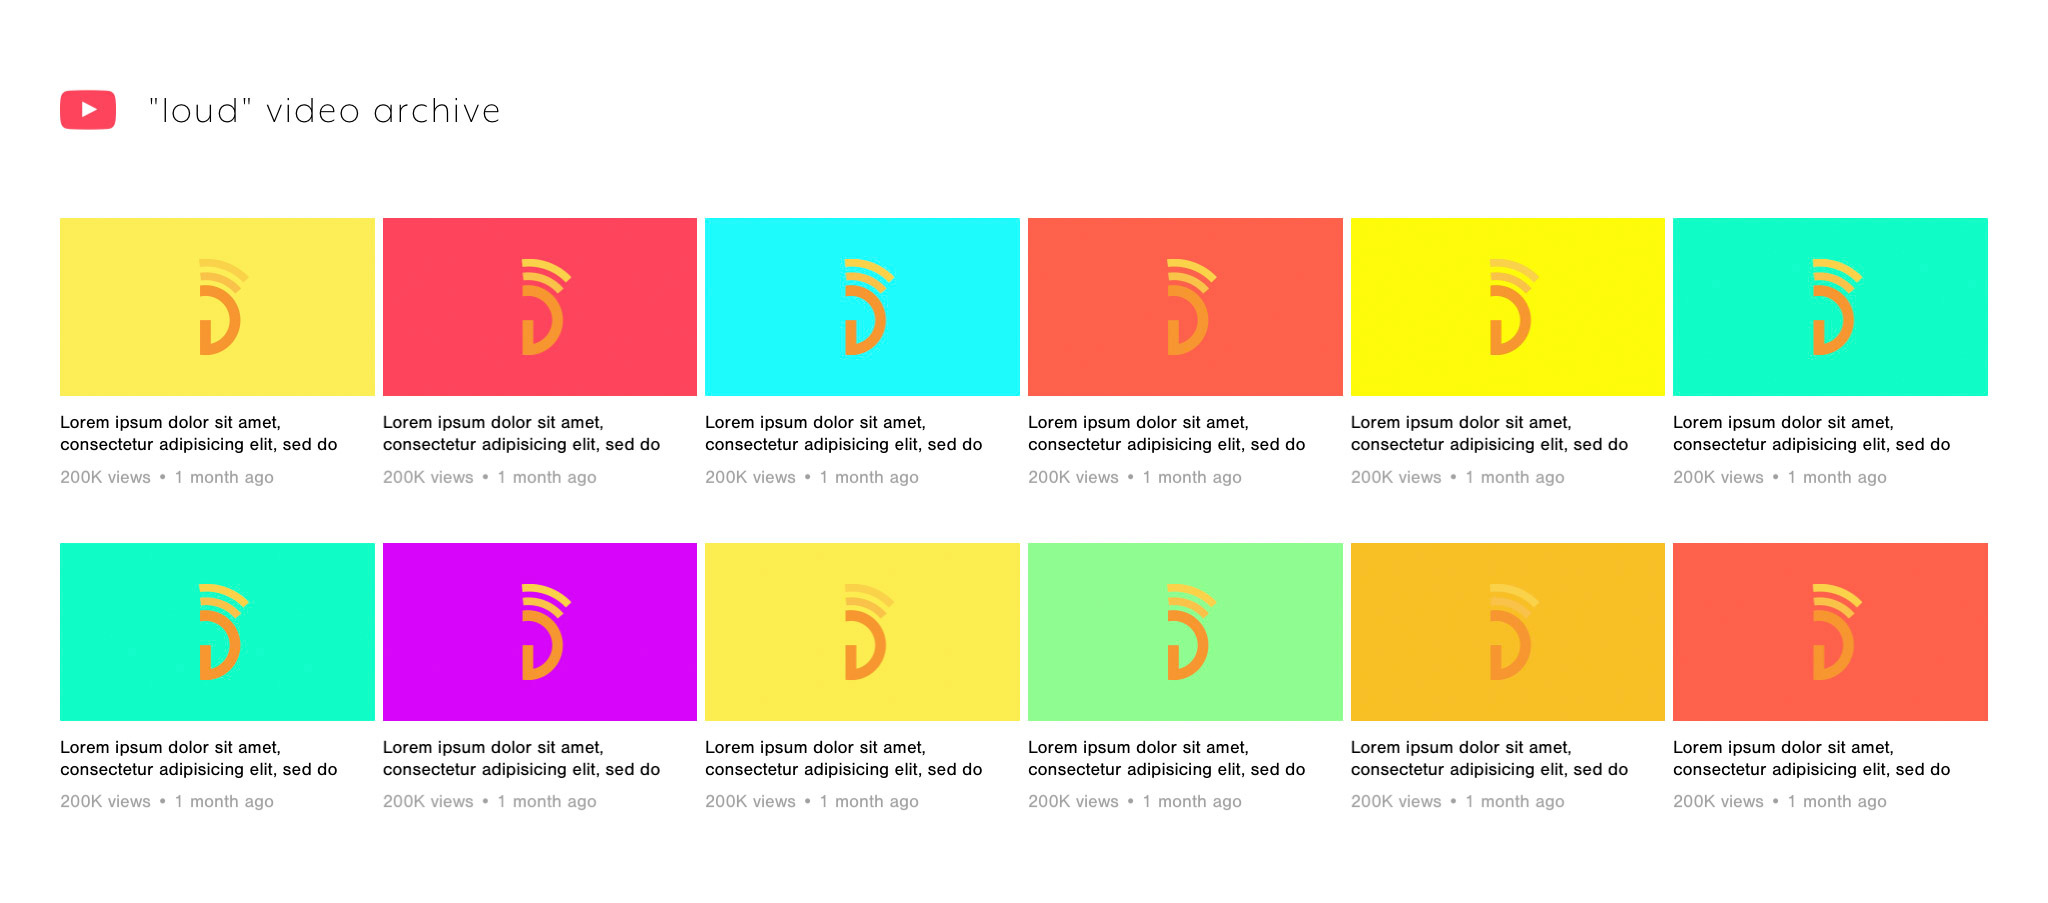 """- This image shows how the artist used the colors on his YouTube channel. The gallery of bright color thumbnails are titled with a YouTube icon and text - """"loud"""" video archive."""